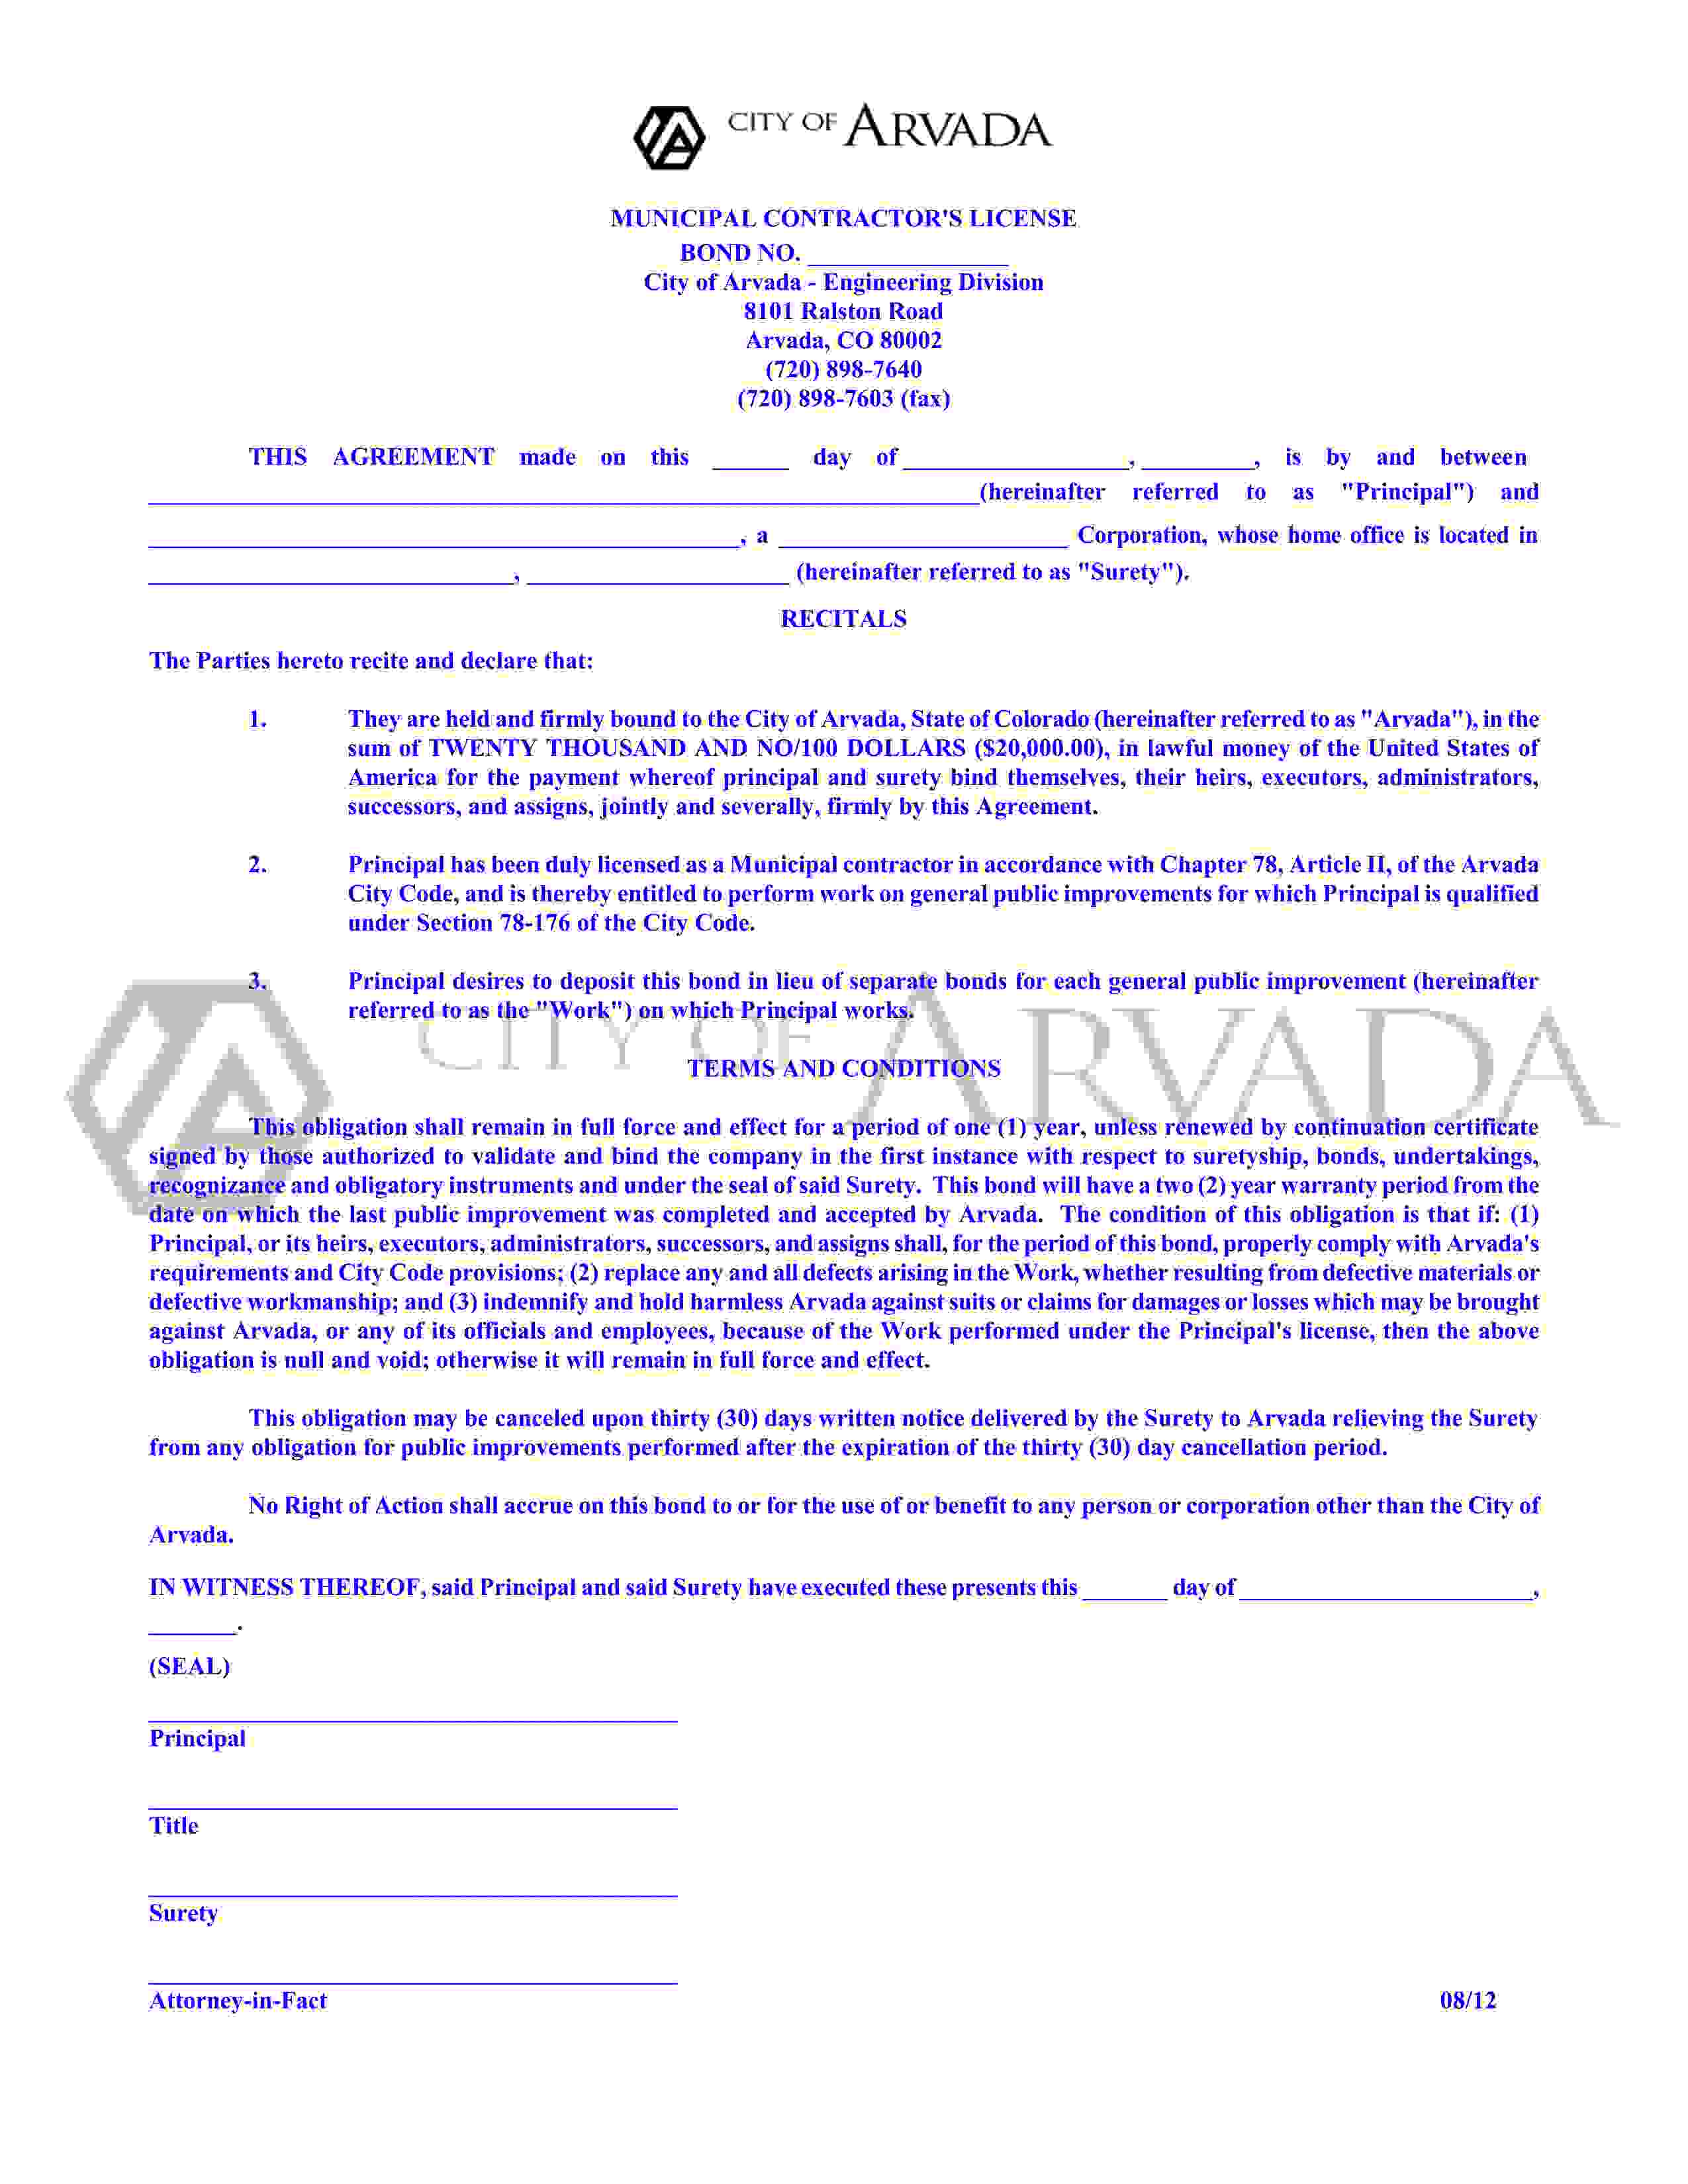 Arvada - City Municipal Contractor's License sample image